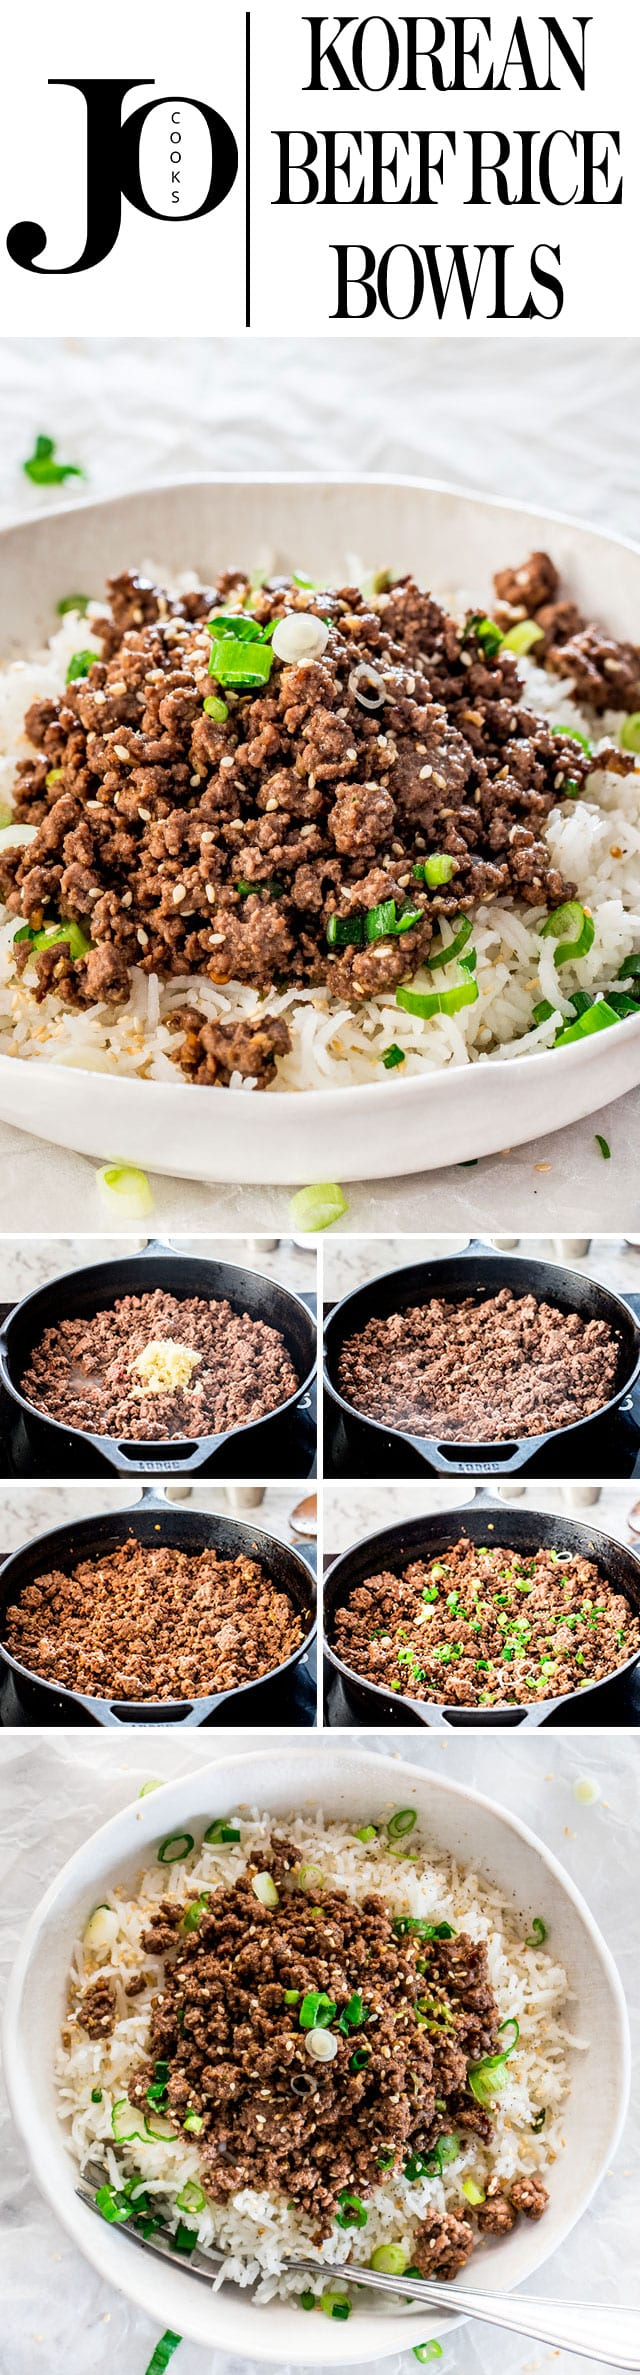 These Korean Beef Rice Bowls can be on your dinner table in only 20 minutes! We're talking delicious, quick, easy, and budget-friendly dinner! #koreanbeef